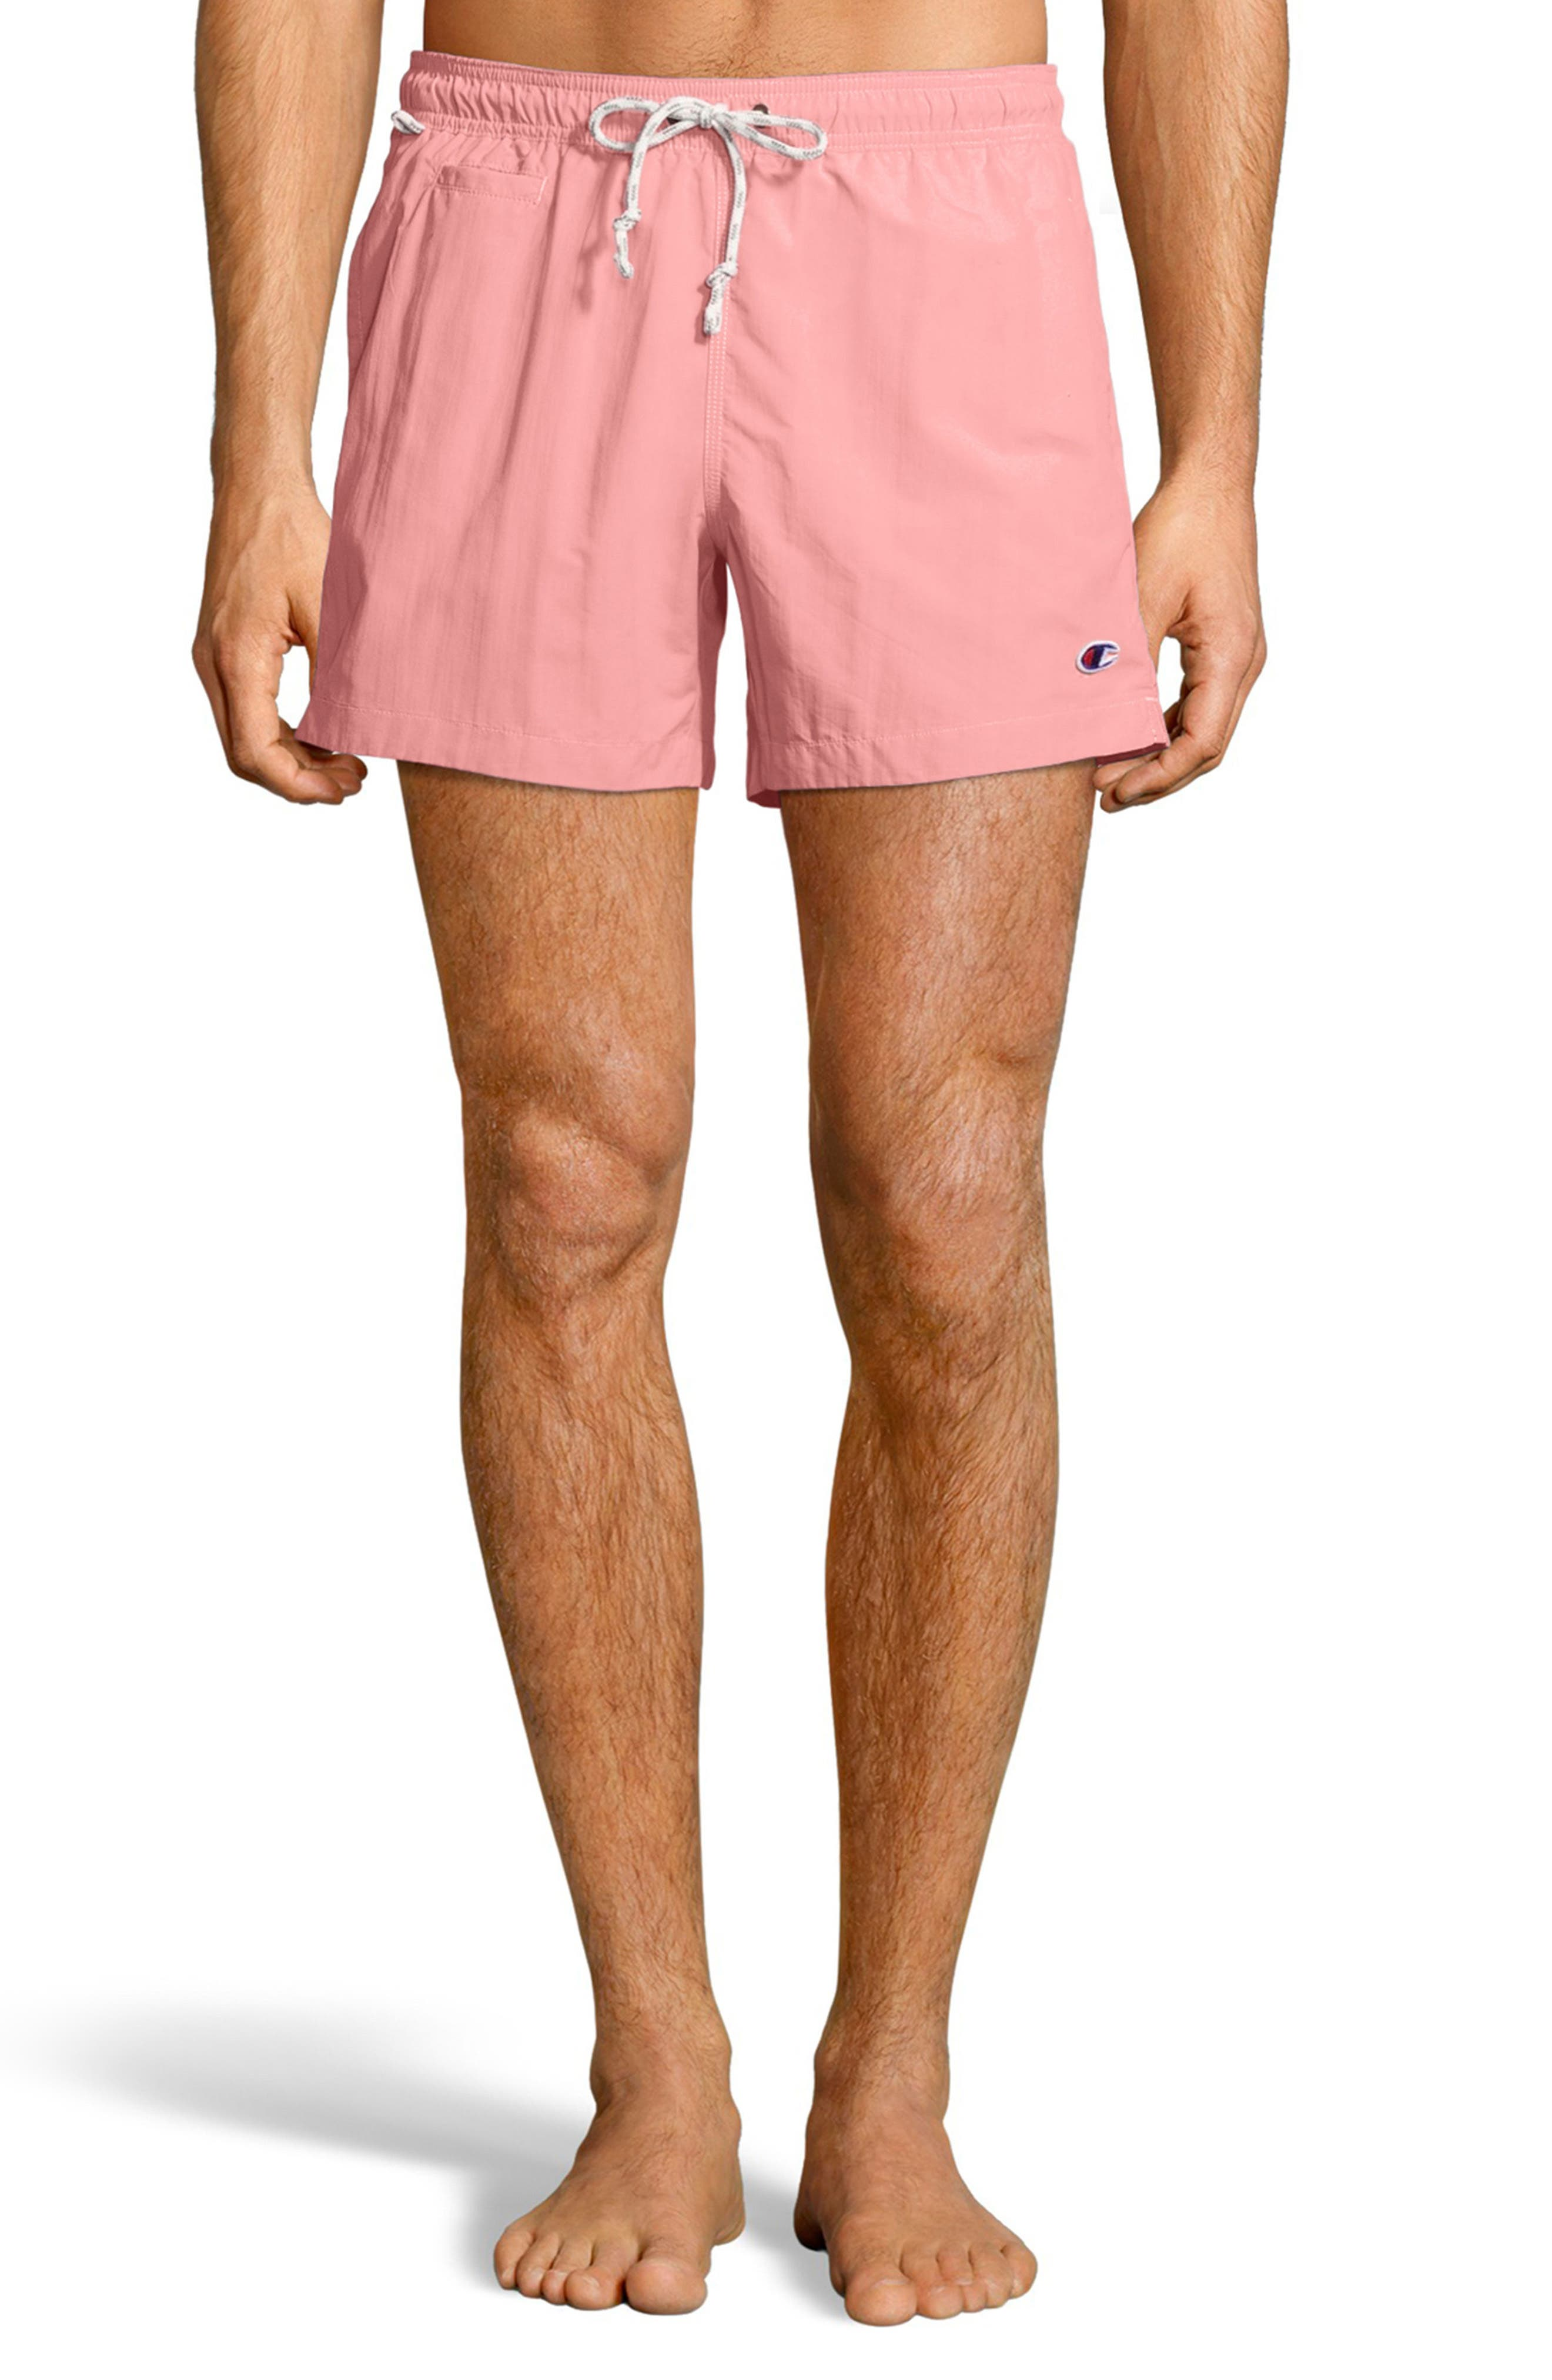 Pacific Sand Swim Trunks,                         Main,                         color, Pink Bow